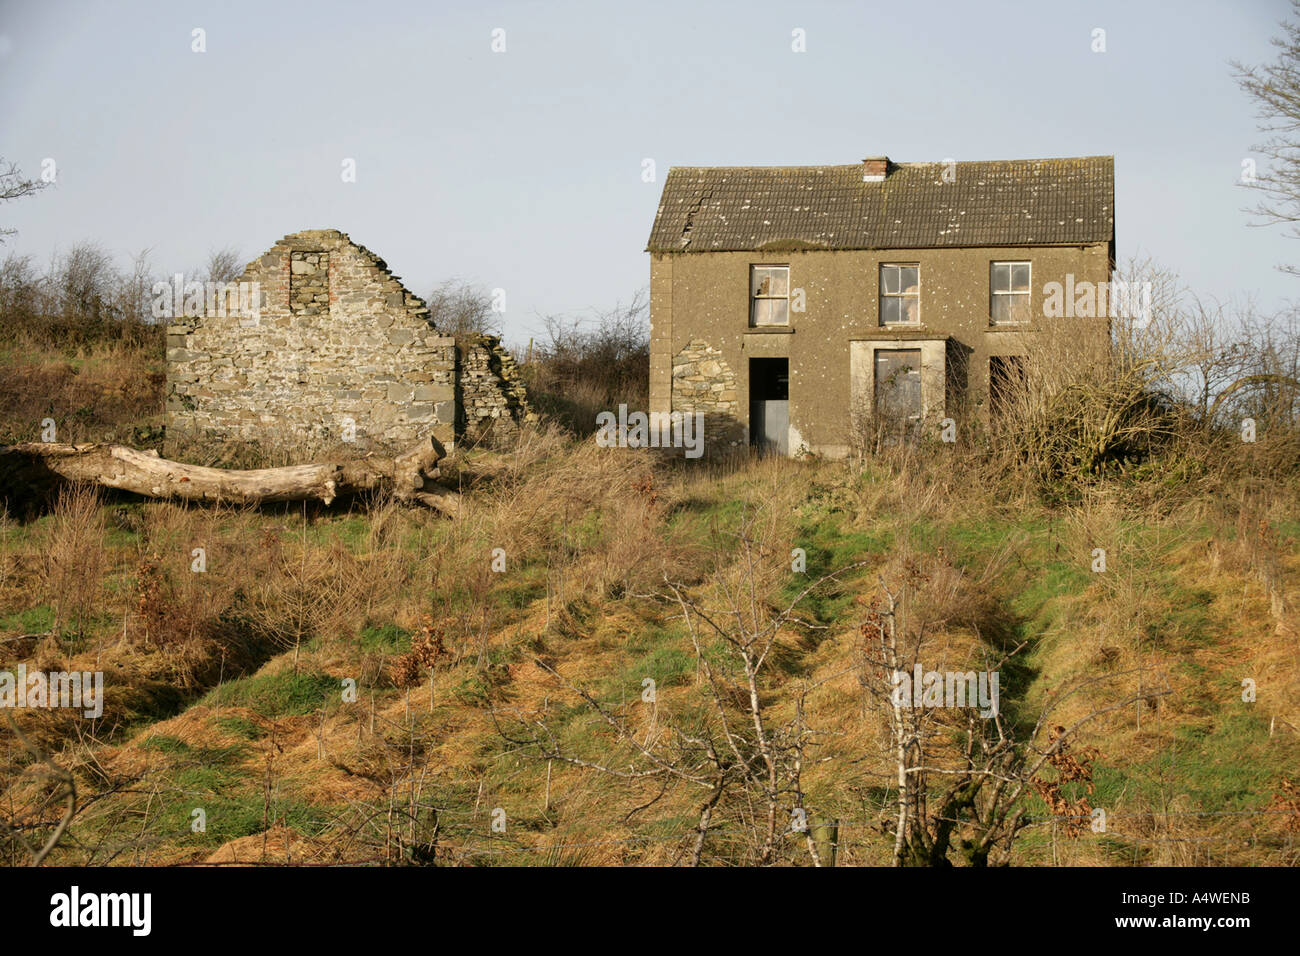 Typical Abandoned Farmstead 18th Century Ruined Byre And Early 20th Derelict Farmhouse County Monaghan Ireland